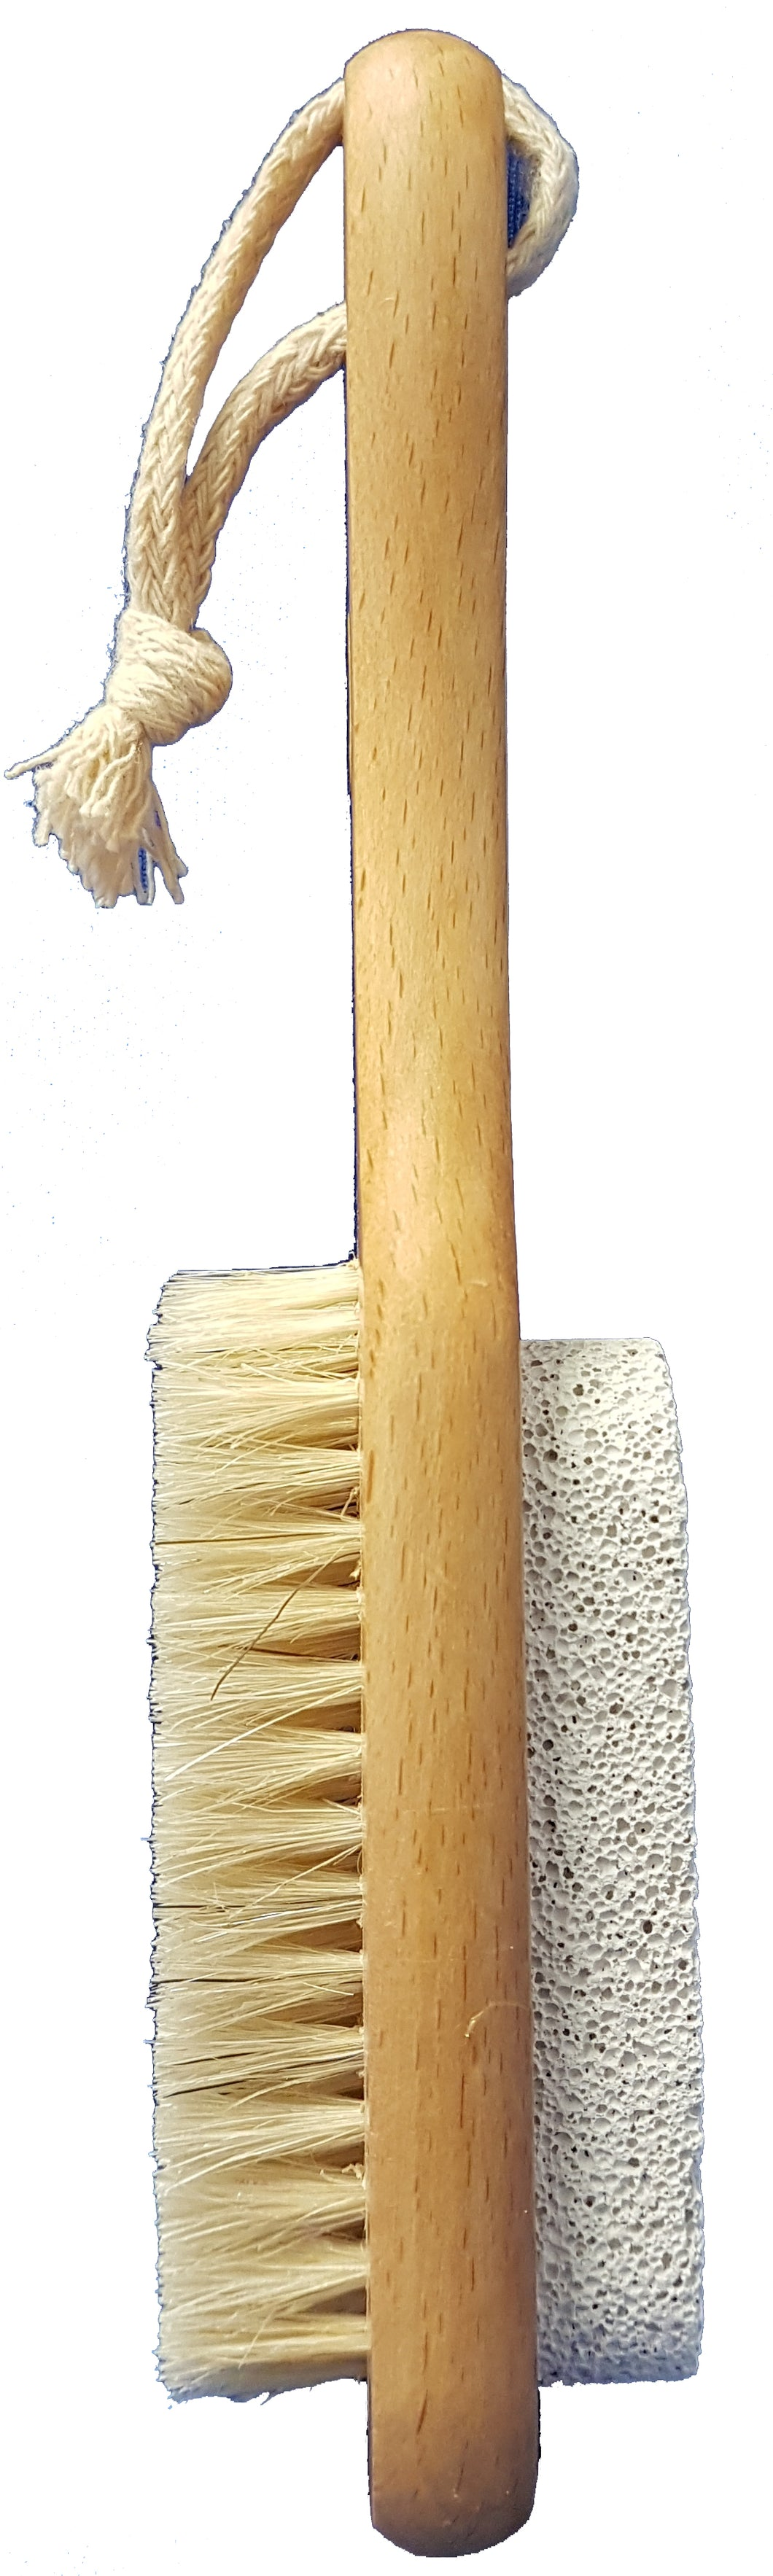 Pumice Stone with Wood Handle